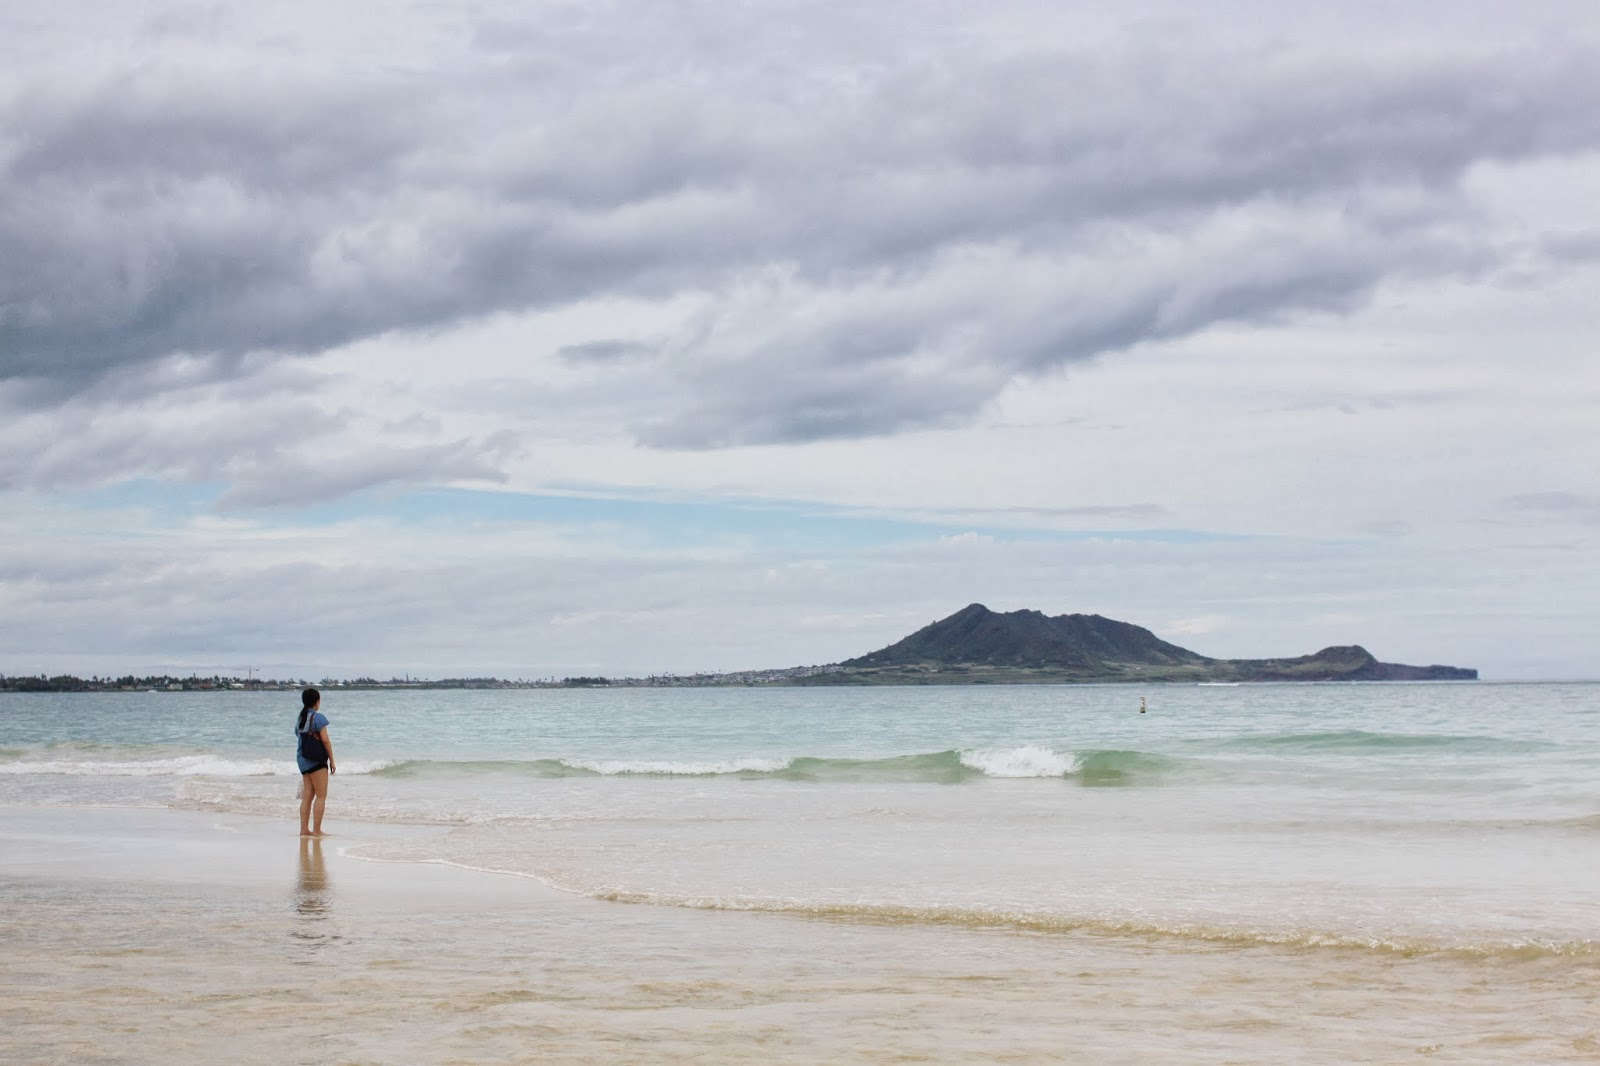 Kailua beach. Photo: Just J